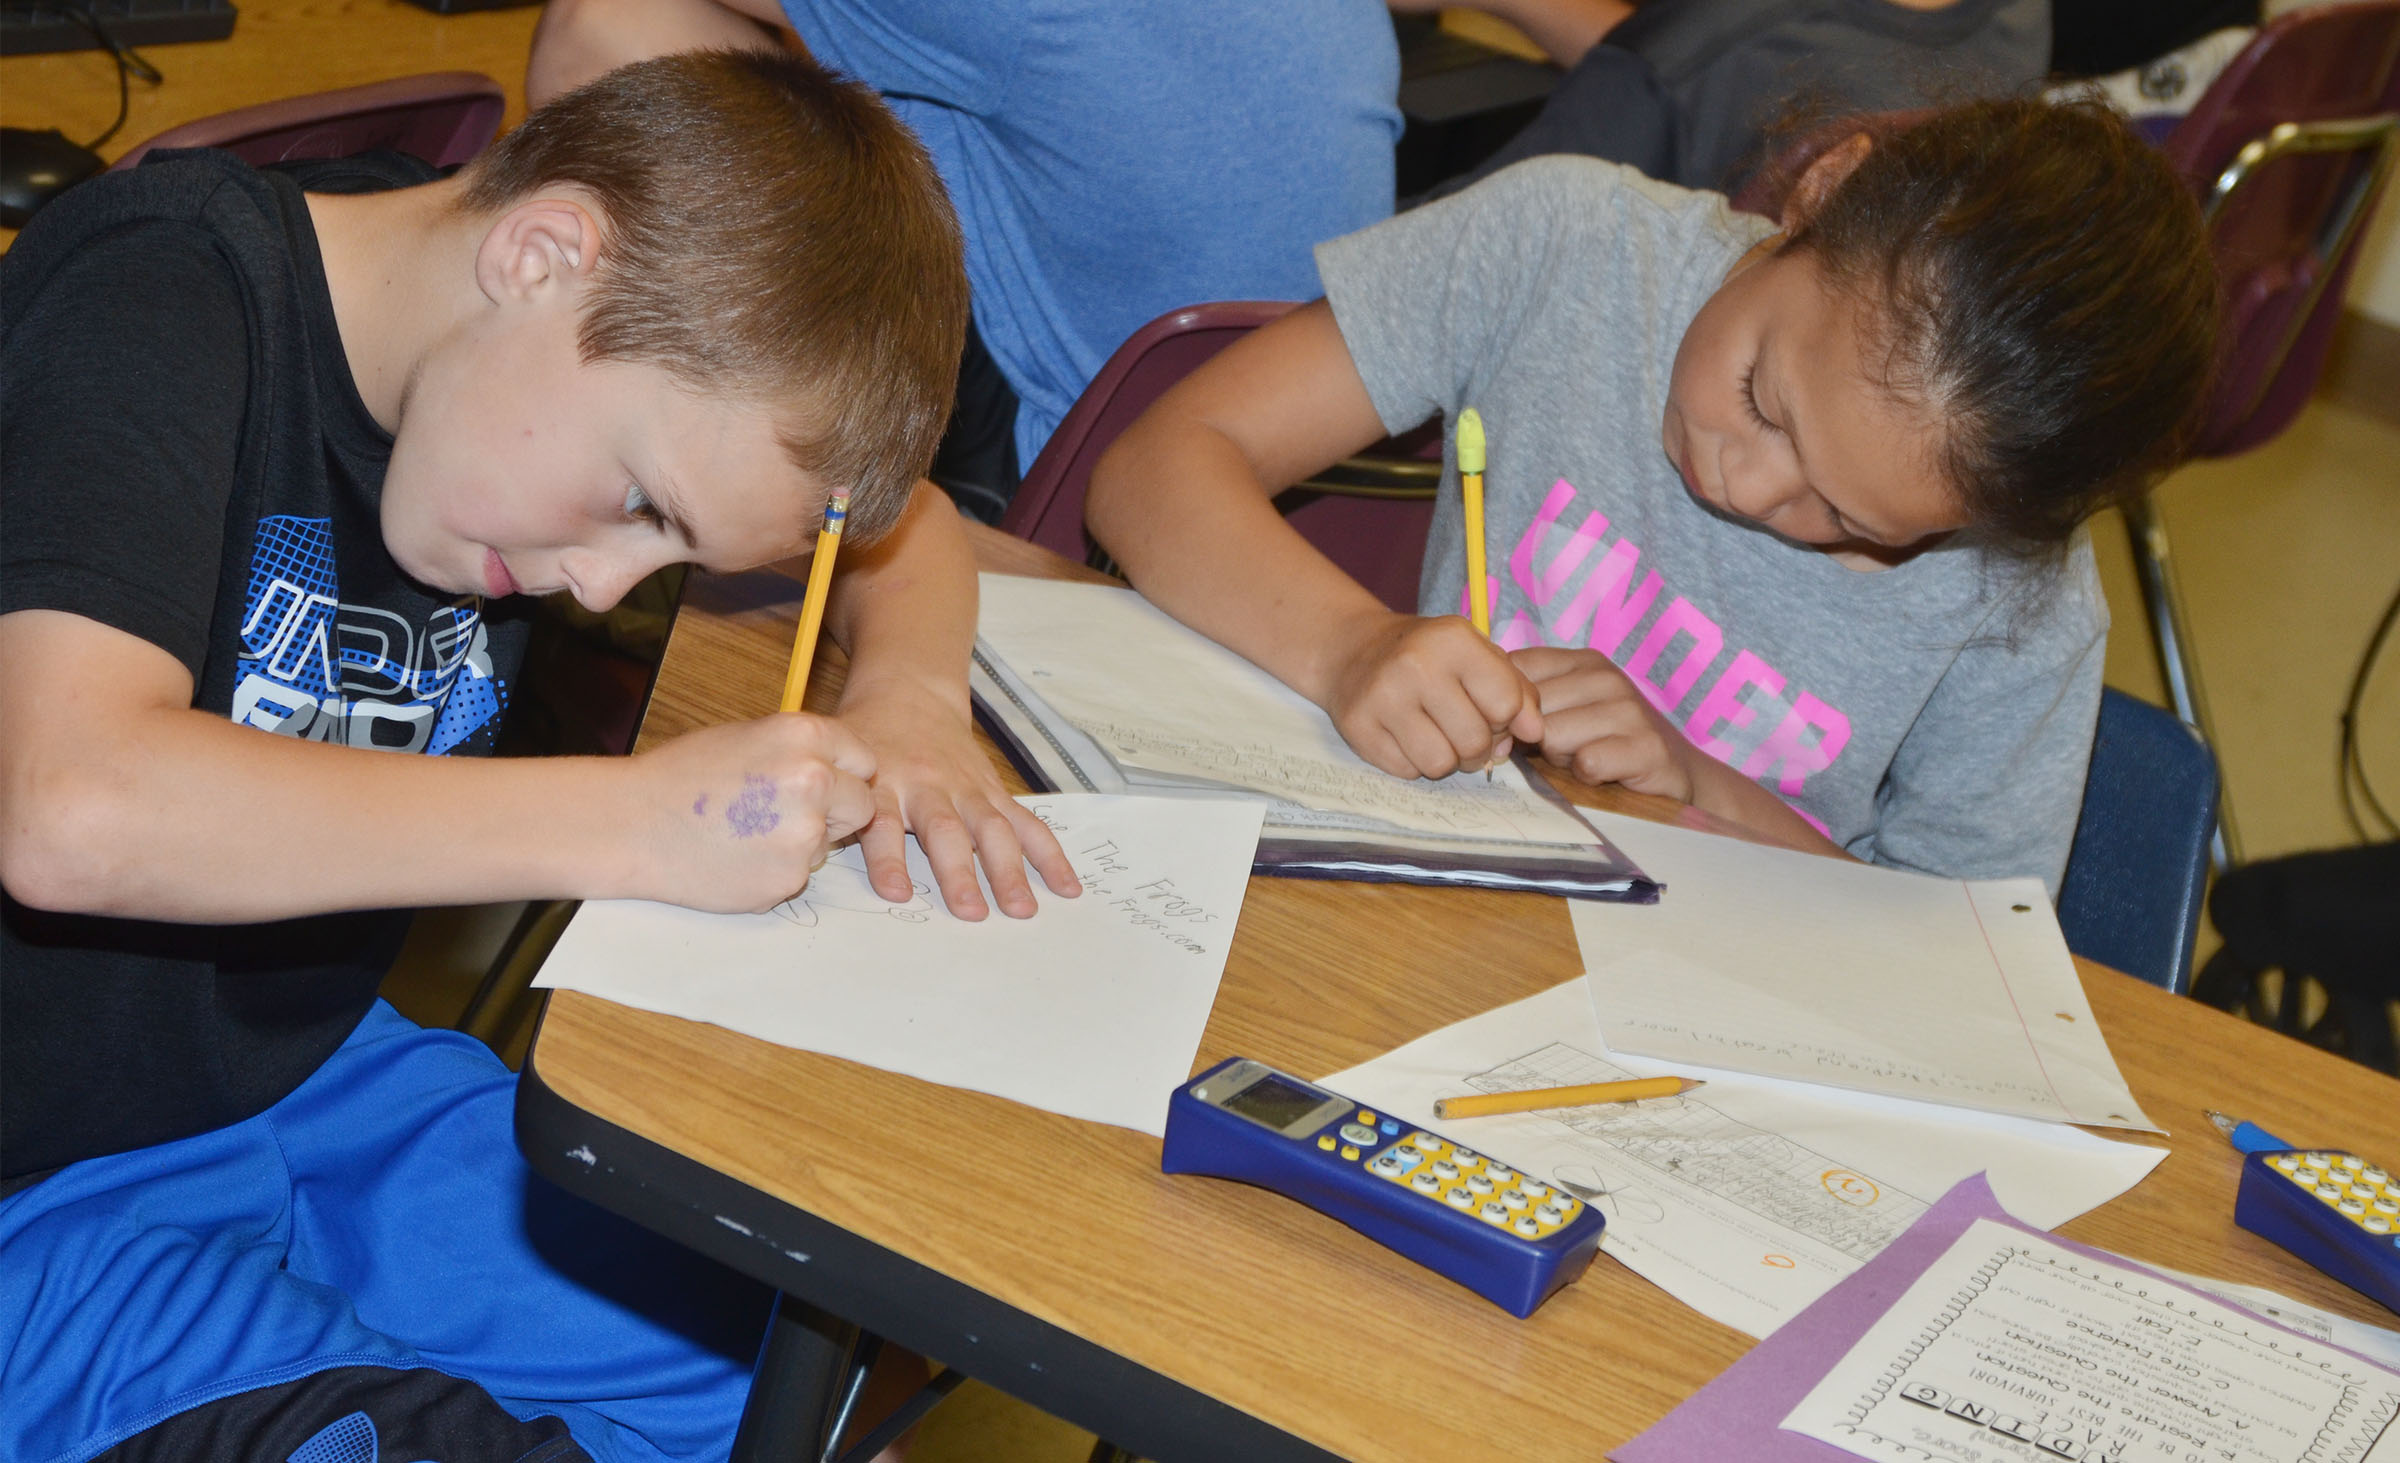 CES third-graders Keaton Hord, at left, and Breona Bridgewater work a math problem.